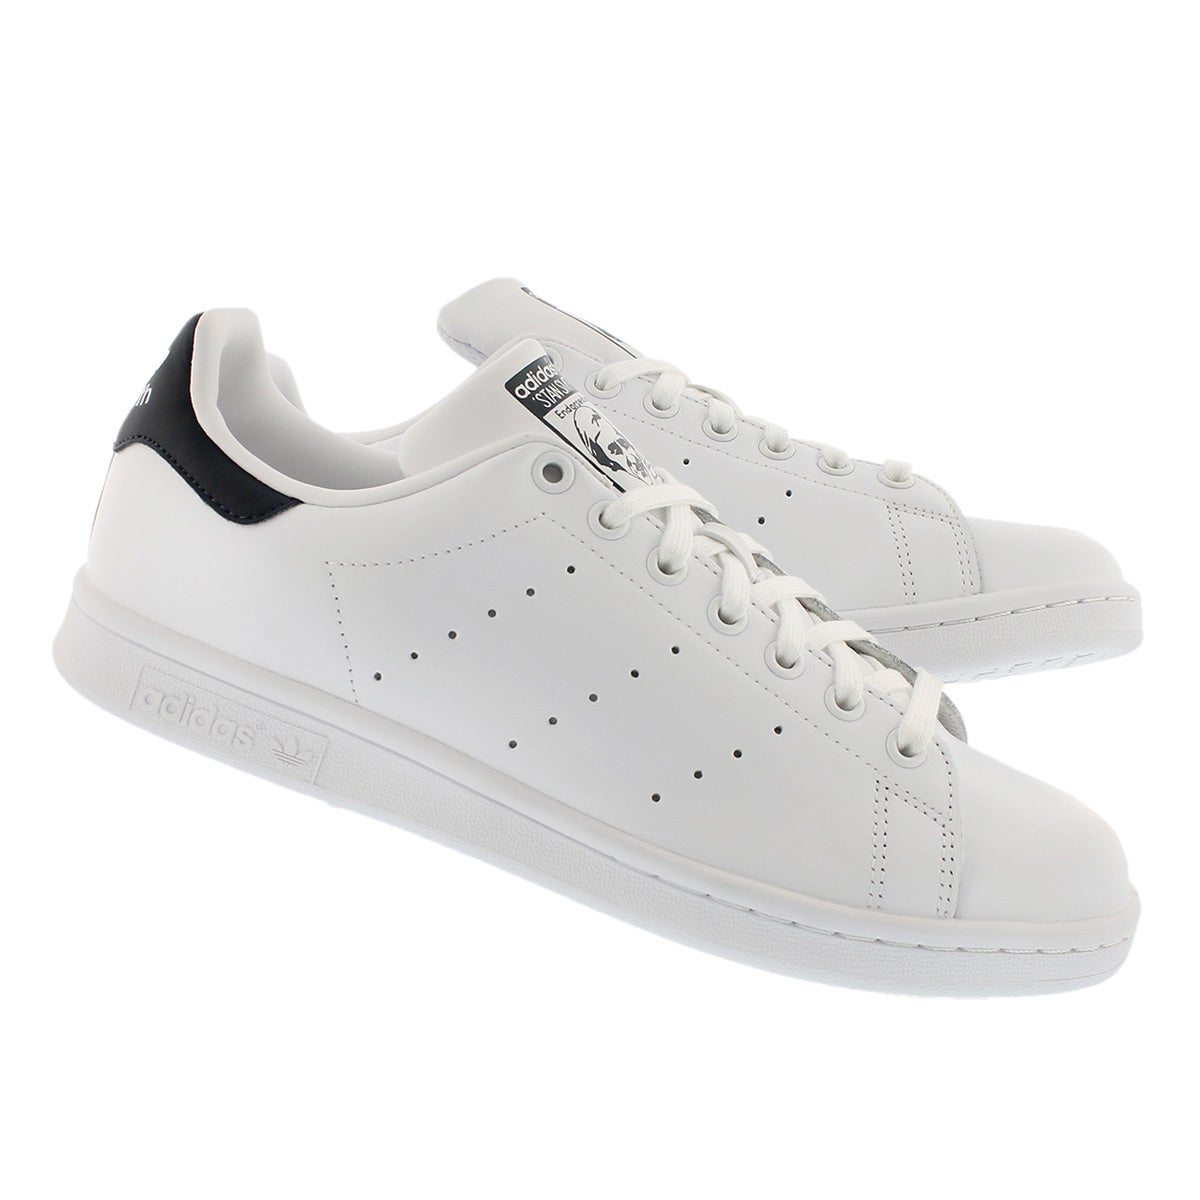 Mns Stan Smith white/blue sneaker